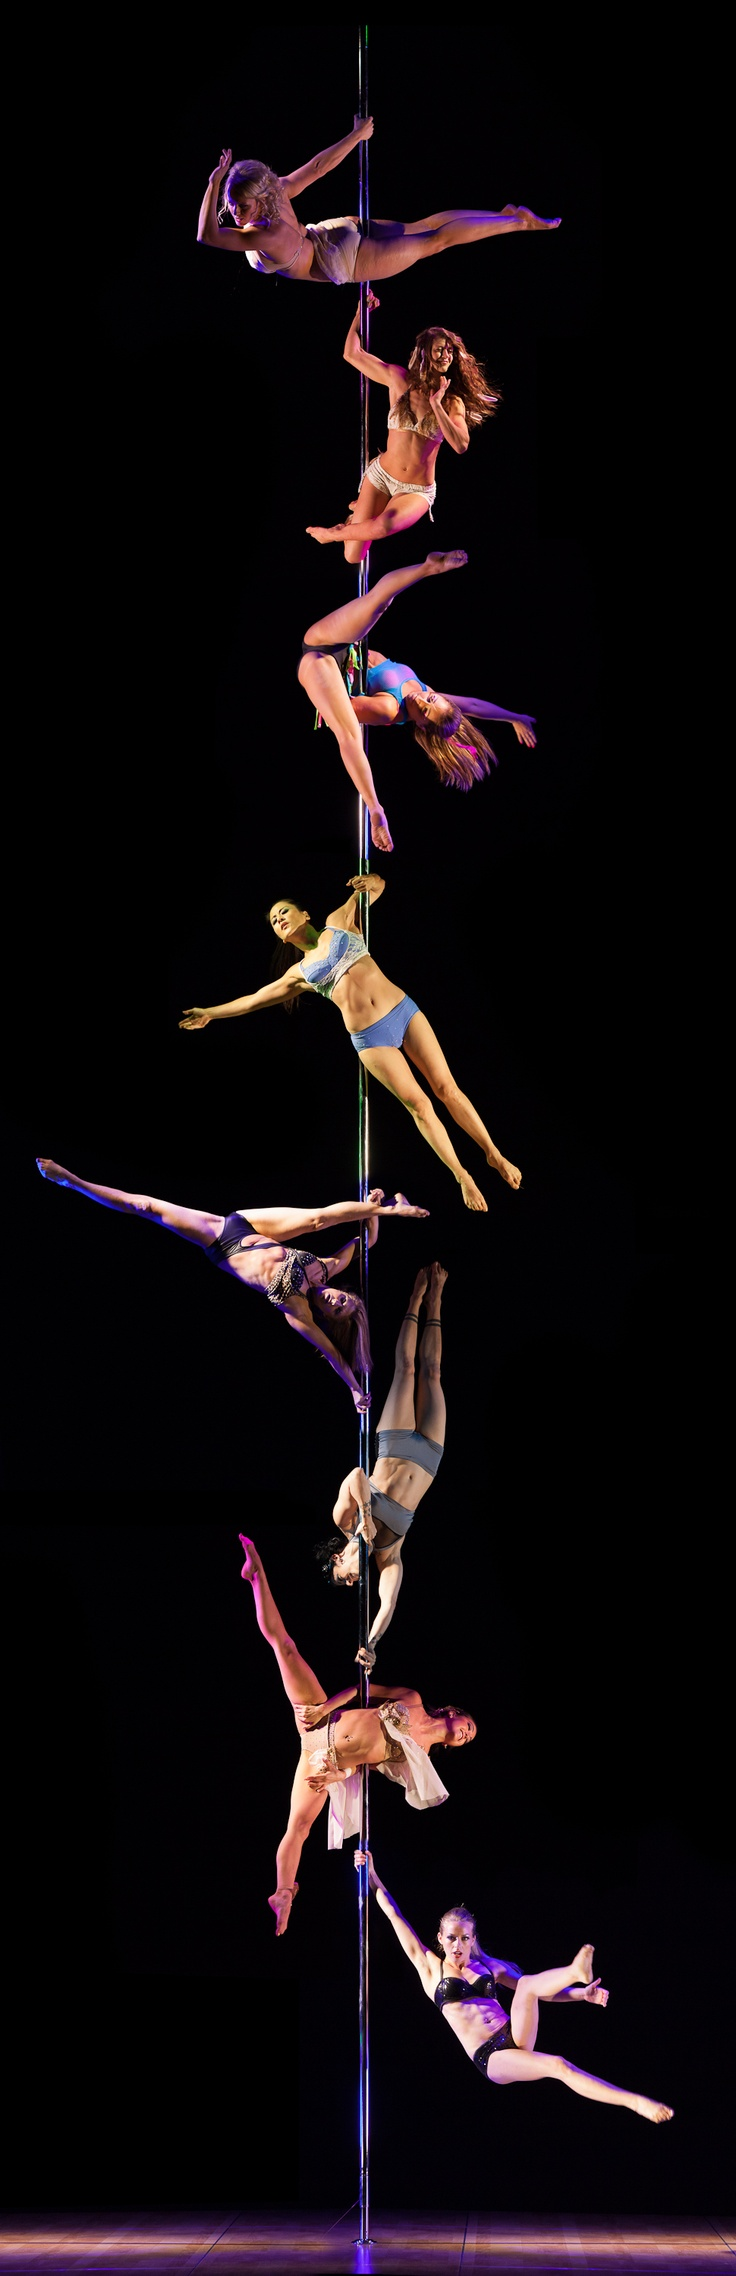 """I have some super weird issue with multiple dancers on one pole. It just bothers me for some mysterious reason, haha. My heart is saying, """"This is crazy beautiful!"""", but my eyes and brain are like, """"7 of you need to dismount right now.""""."""